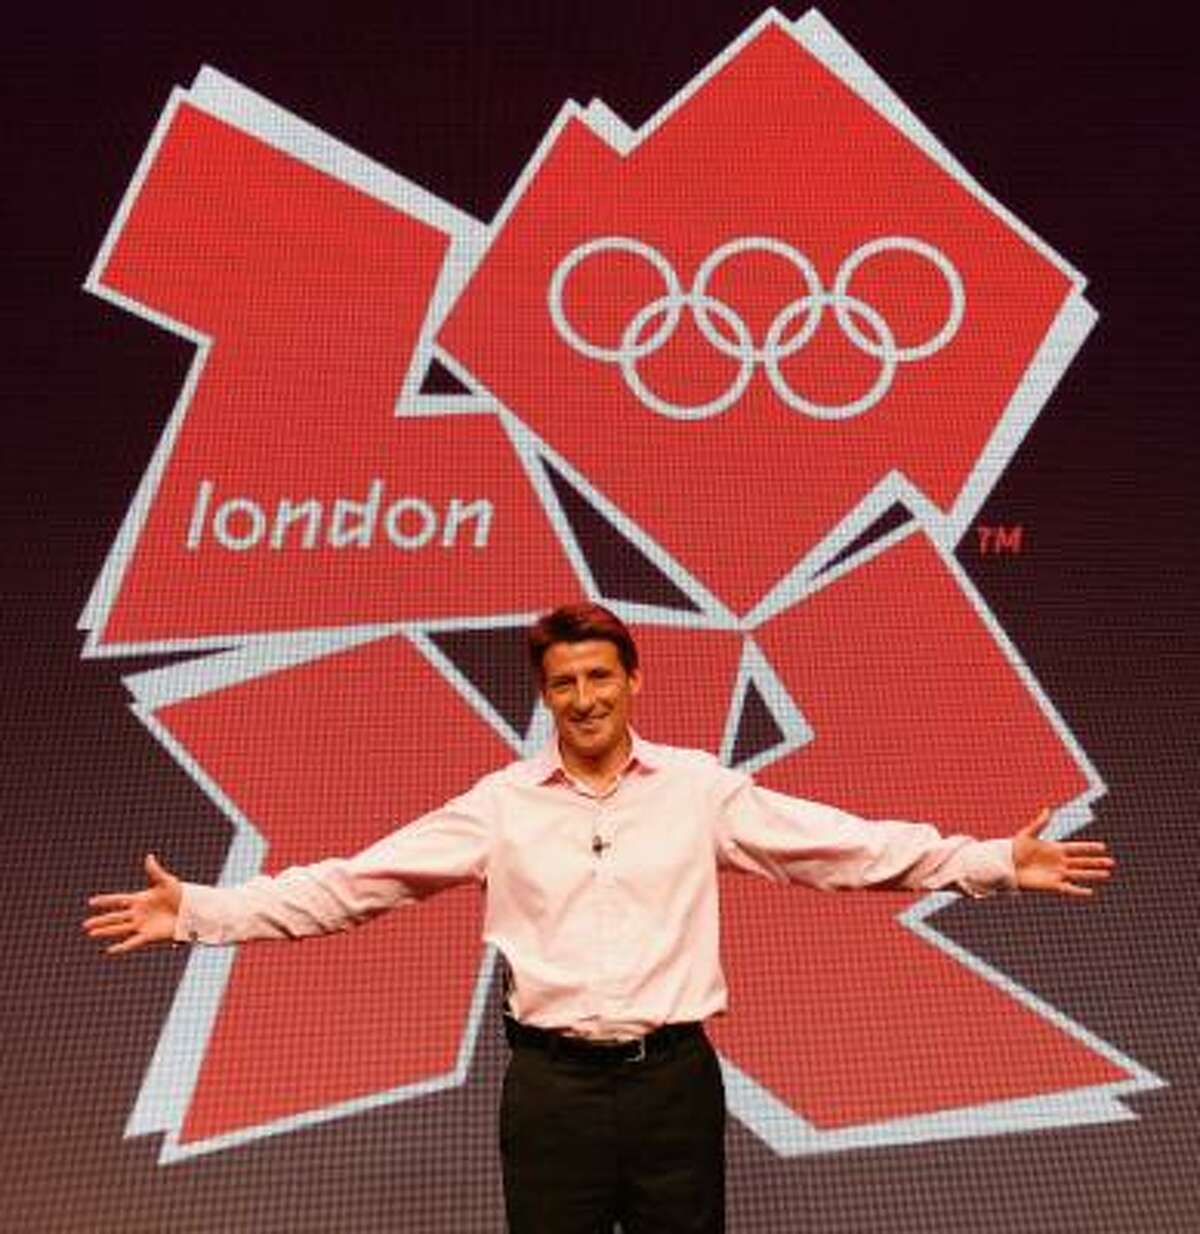 London hosted the 2012 Olympic games.